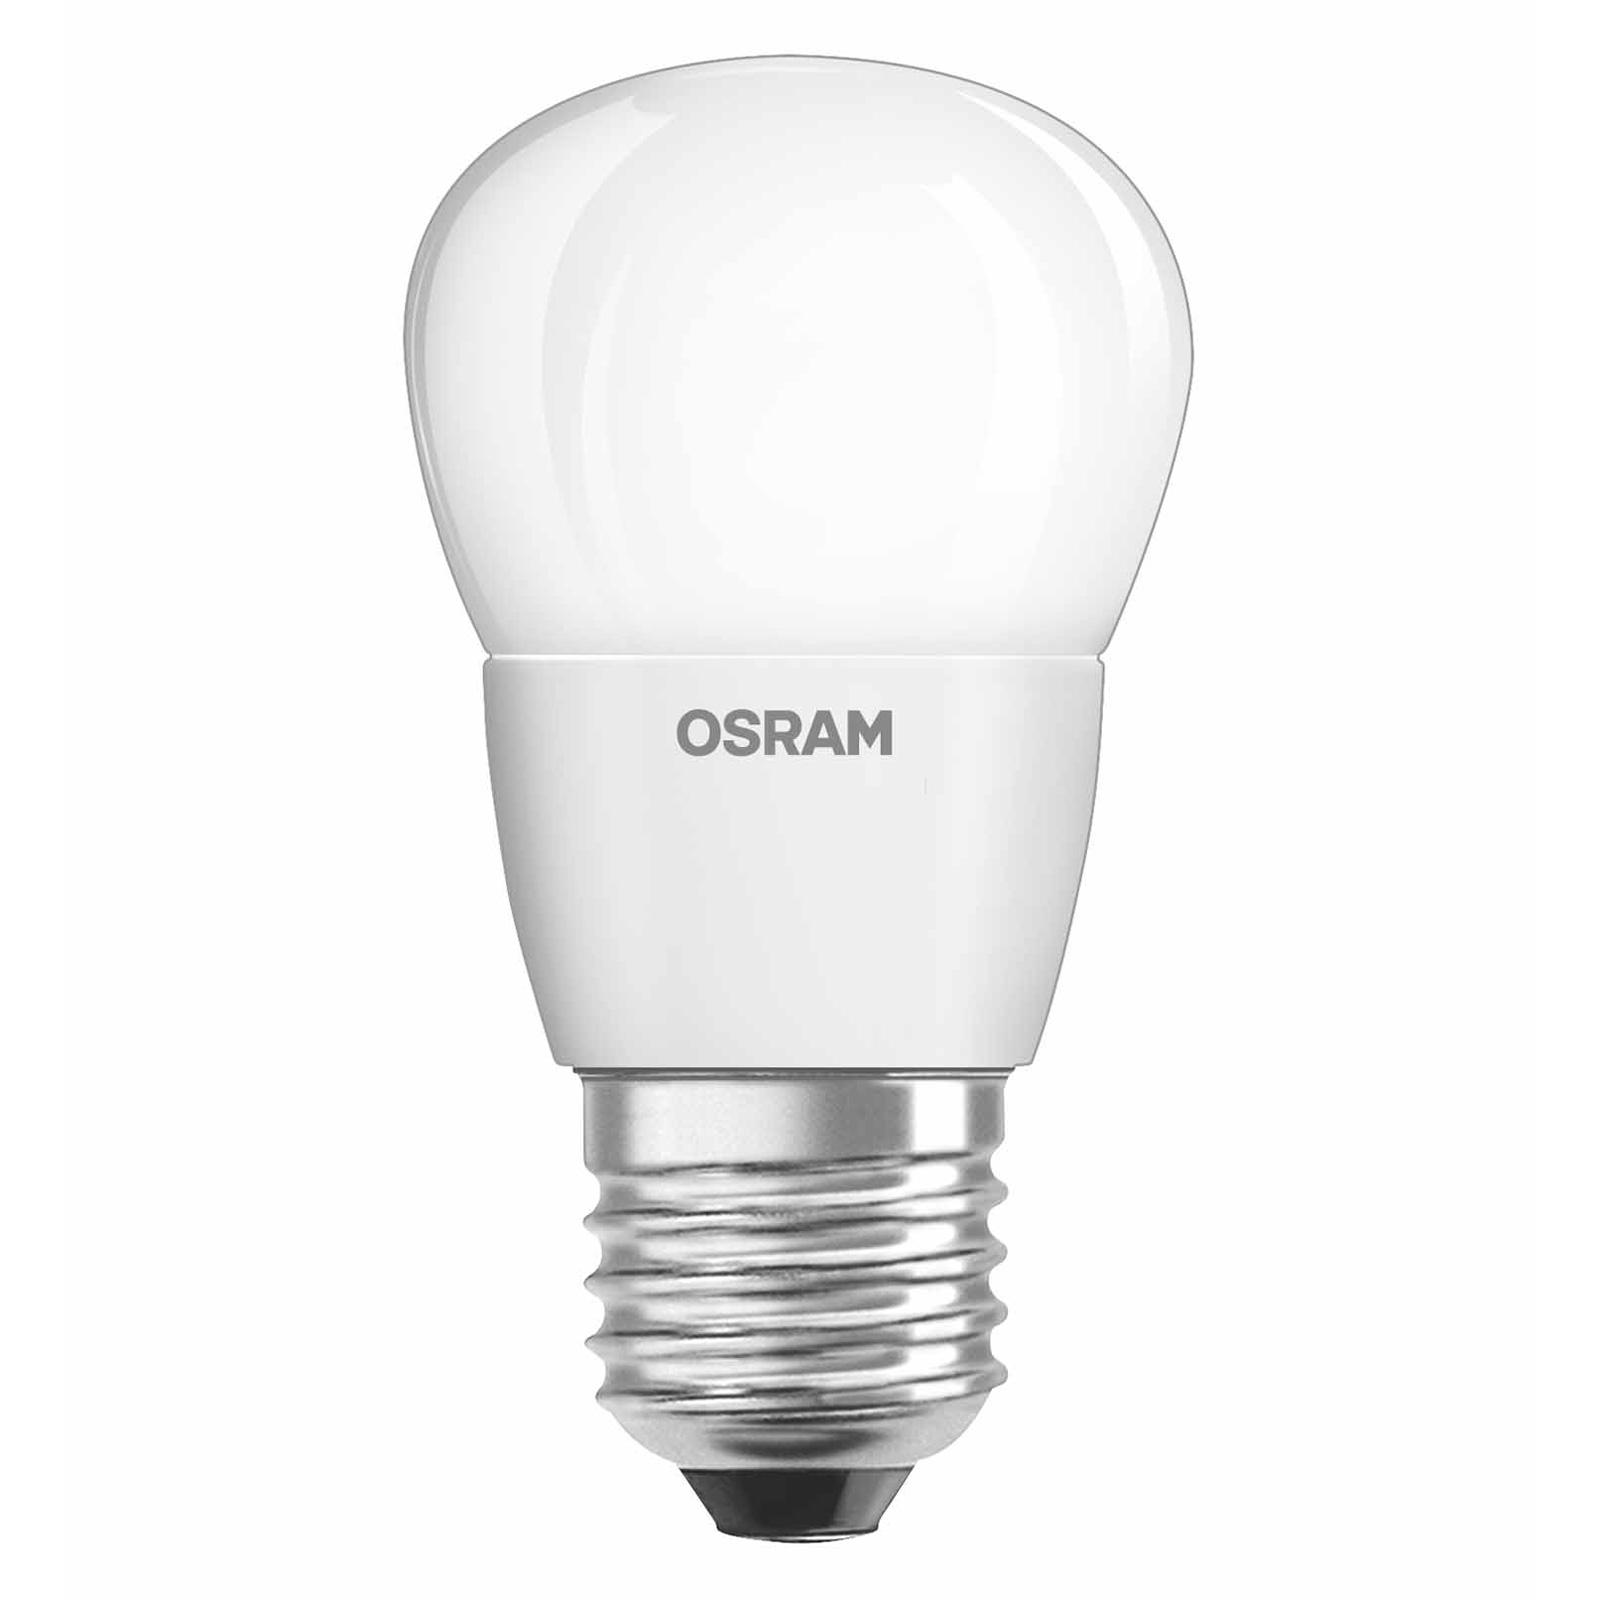 osram led superstar classic p 25 e27 3 2 w wie 25 w 250 lumen warmwei dimmbar 4052899911420. Black Bedroom Furniture Sets. Home Design Ideas